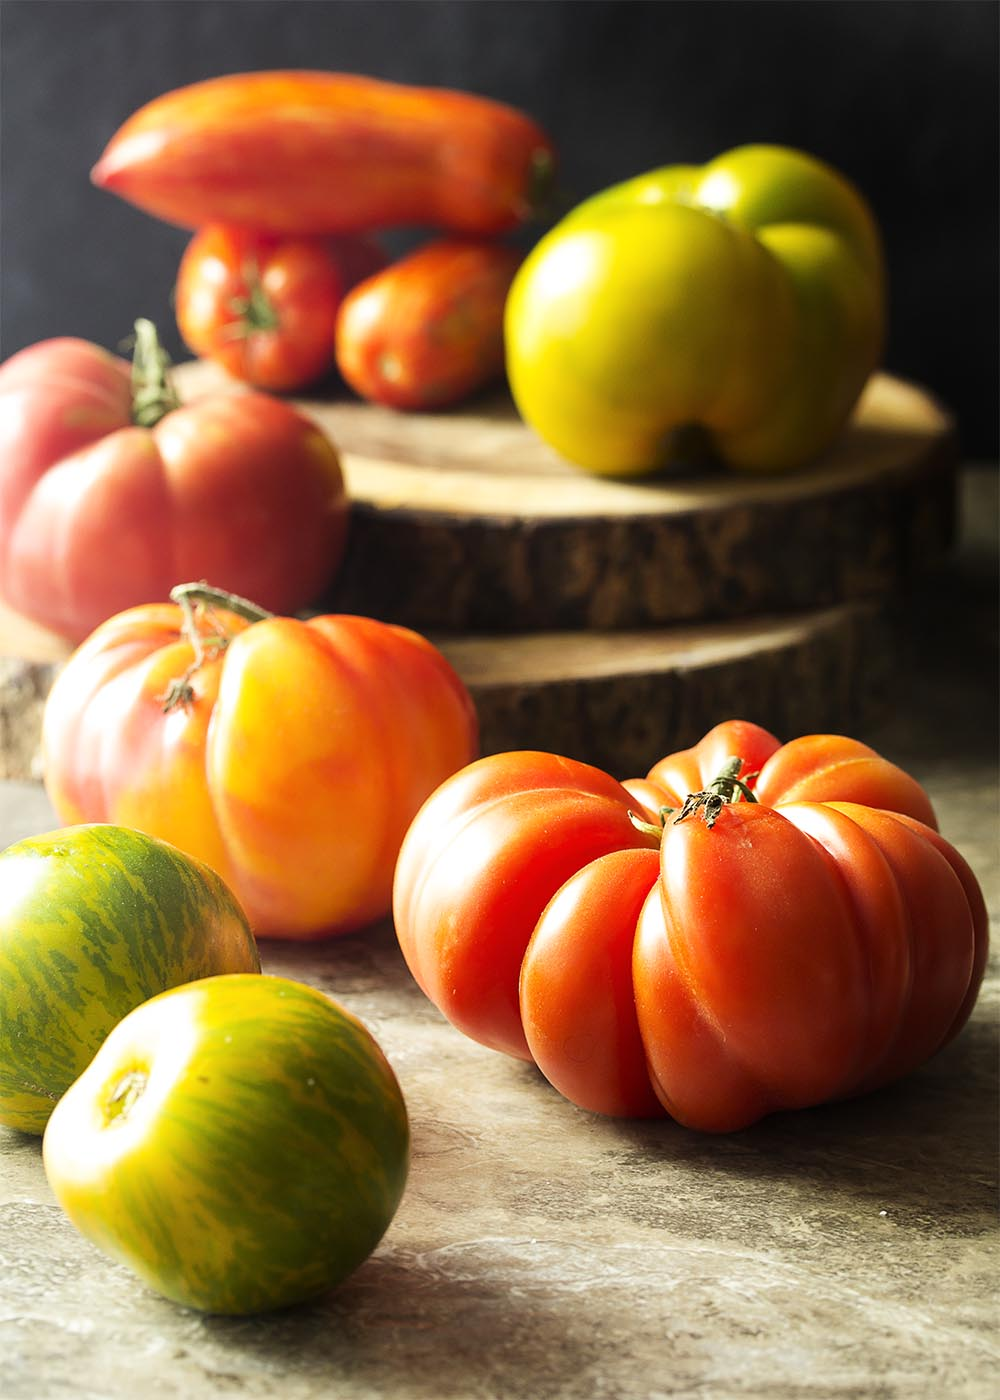 What are heirloom tomatoes? What are great recipes for heirloom tomatoes? Learn about their history, varieties, and more in this ingredient spotlight! | justalittlebitofbacon.com